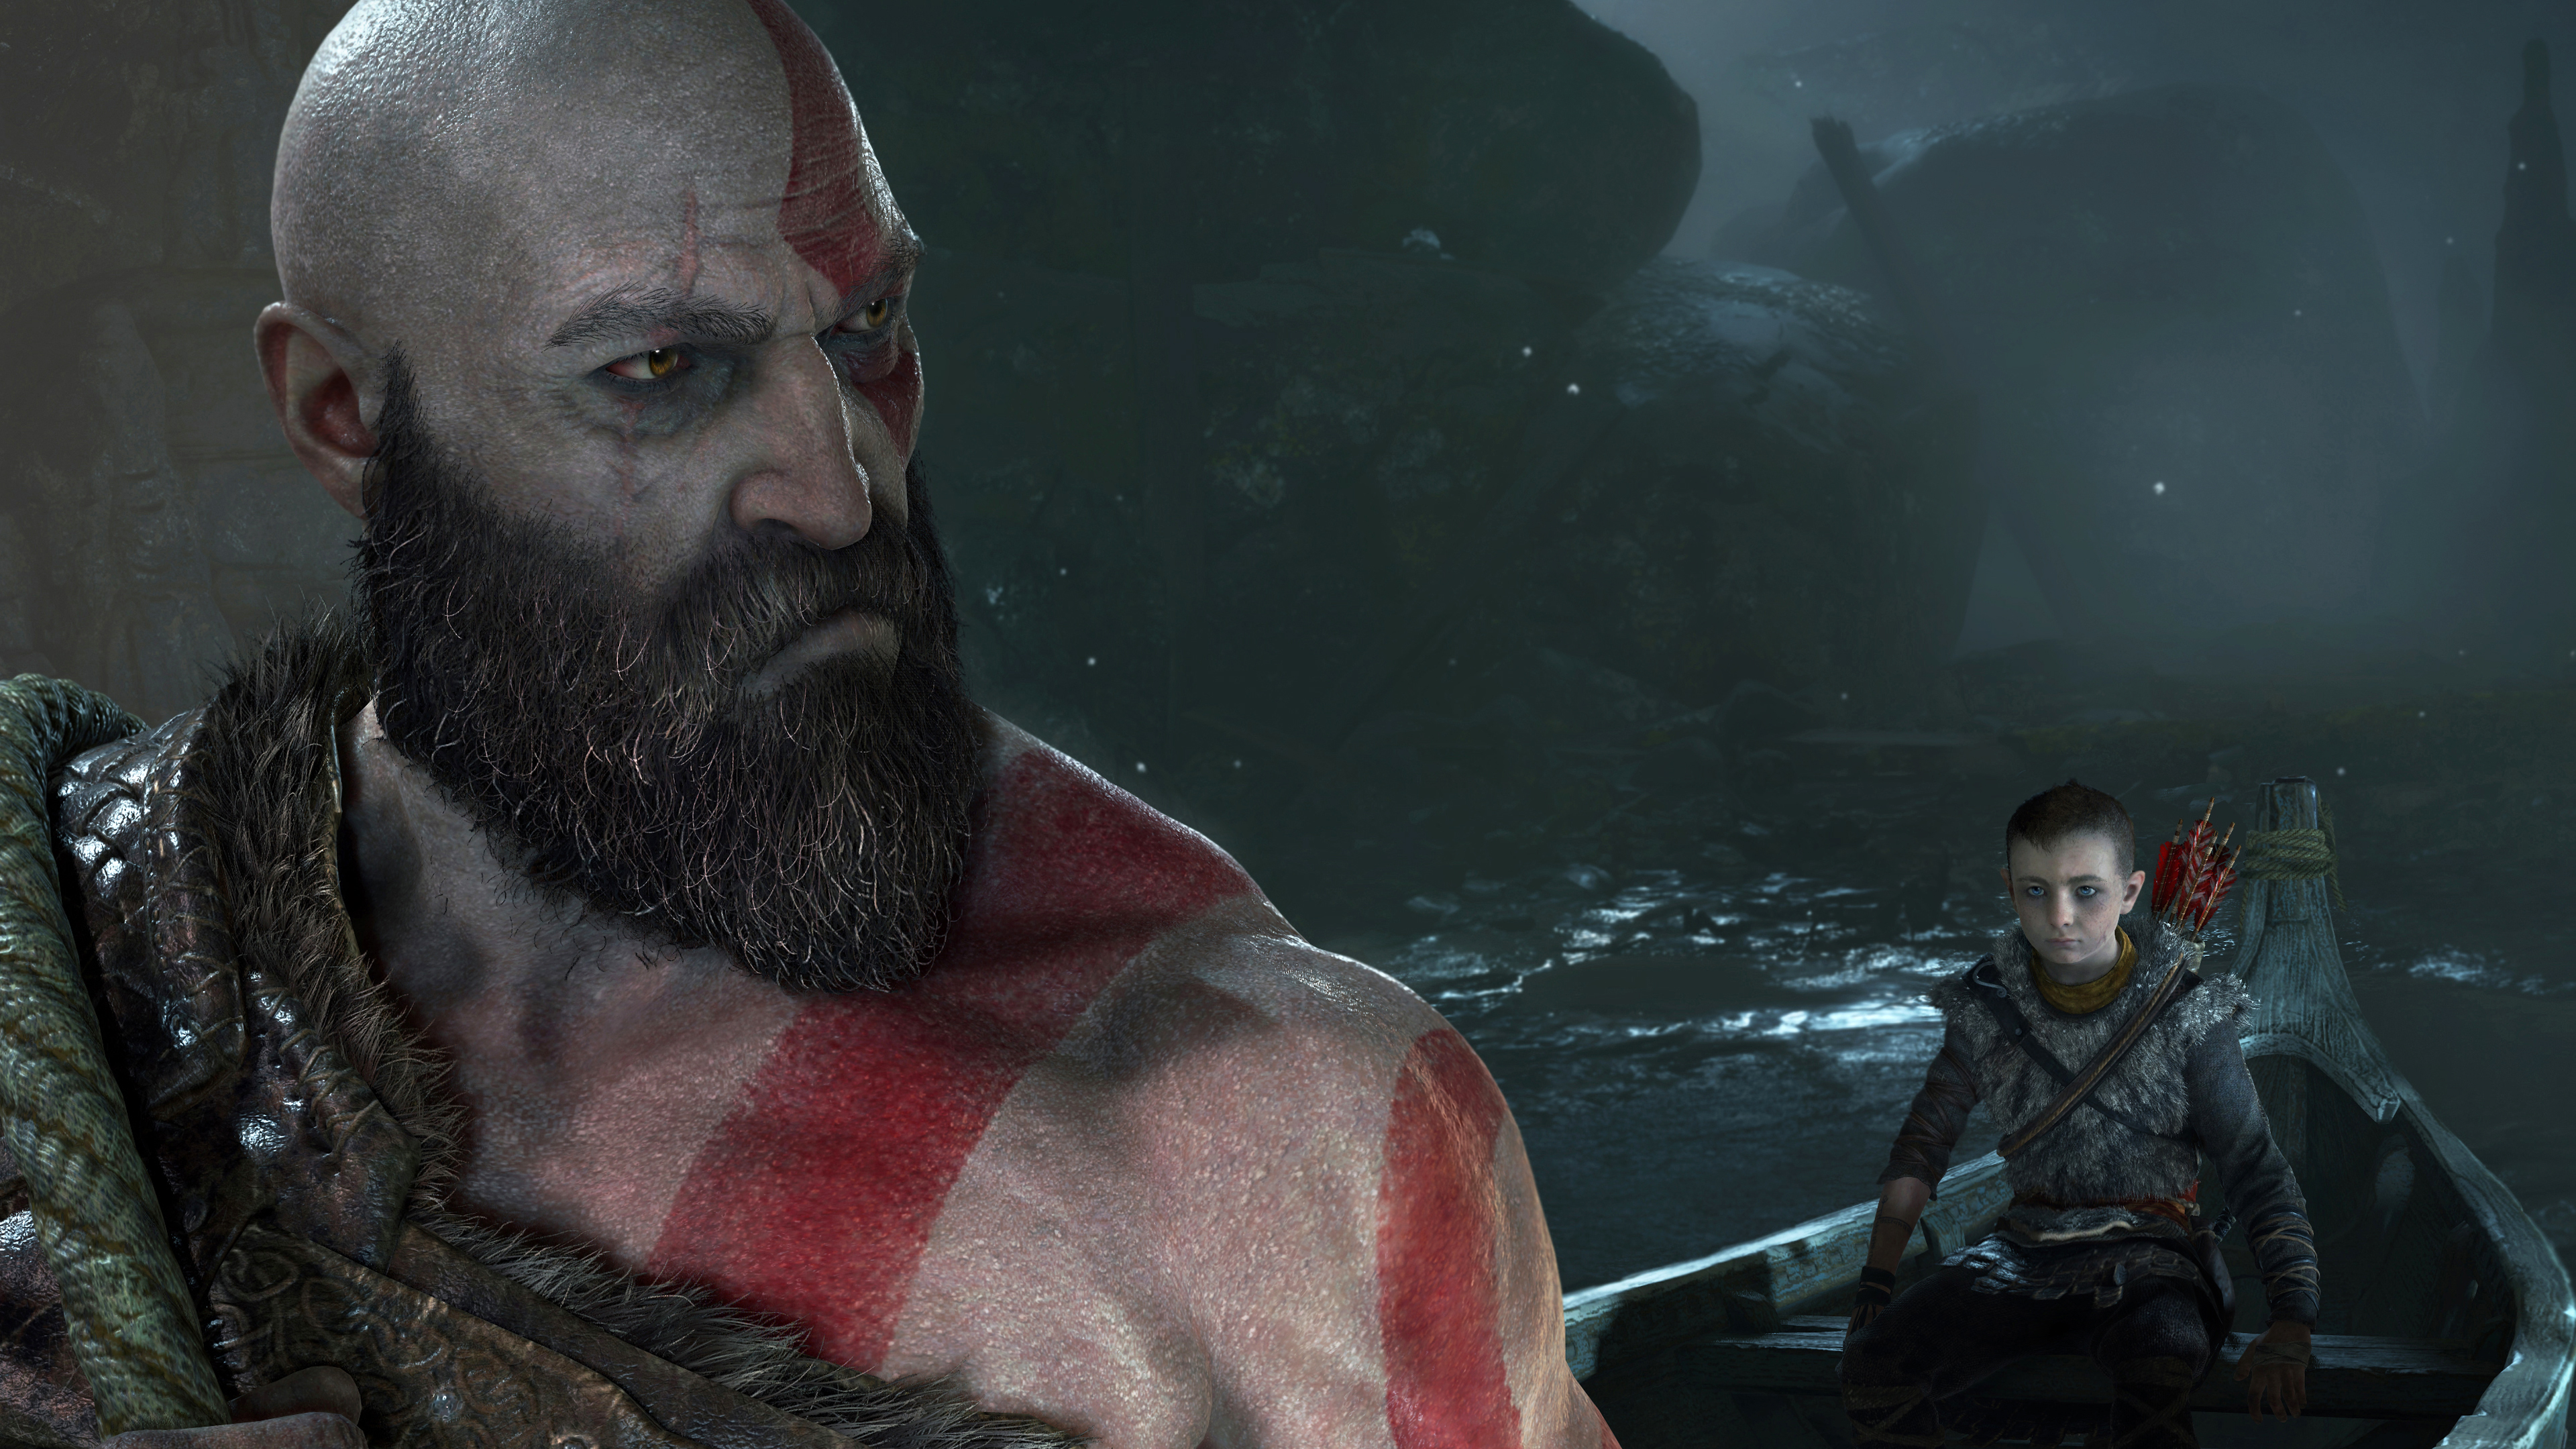 La relación padre-hijo, fundamental en God of War